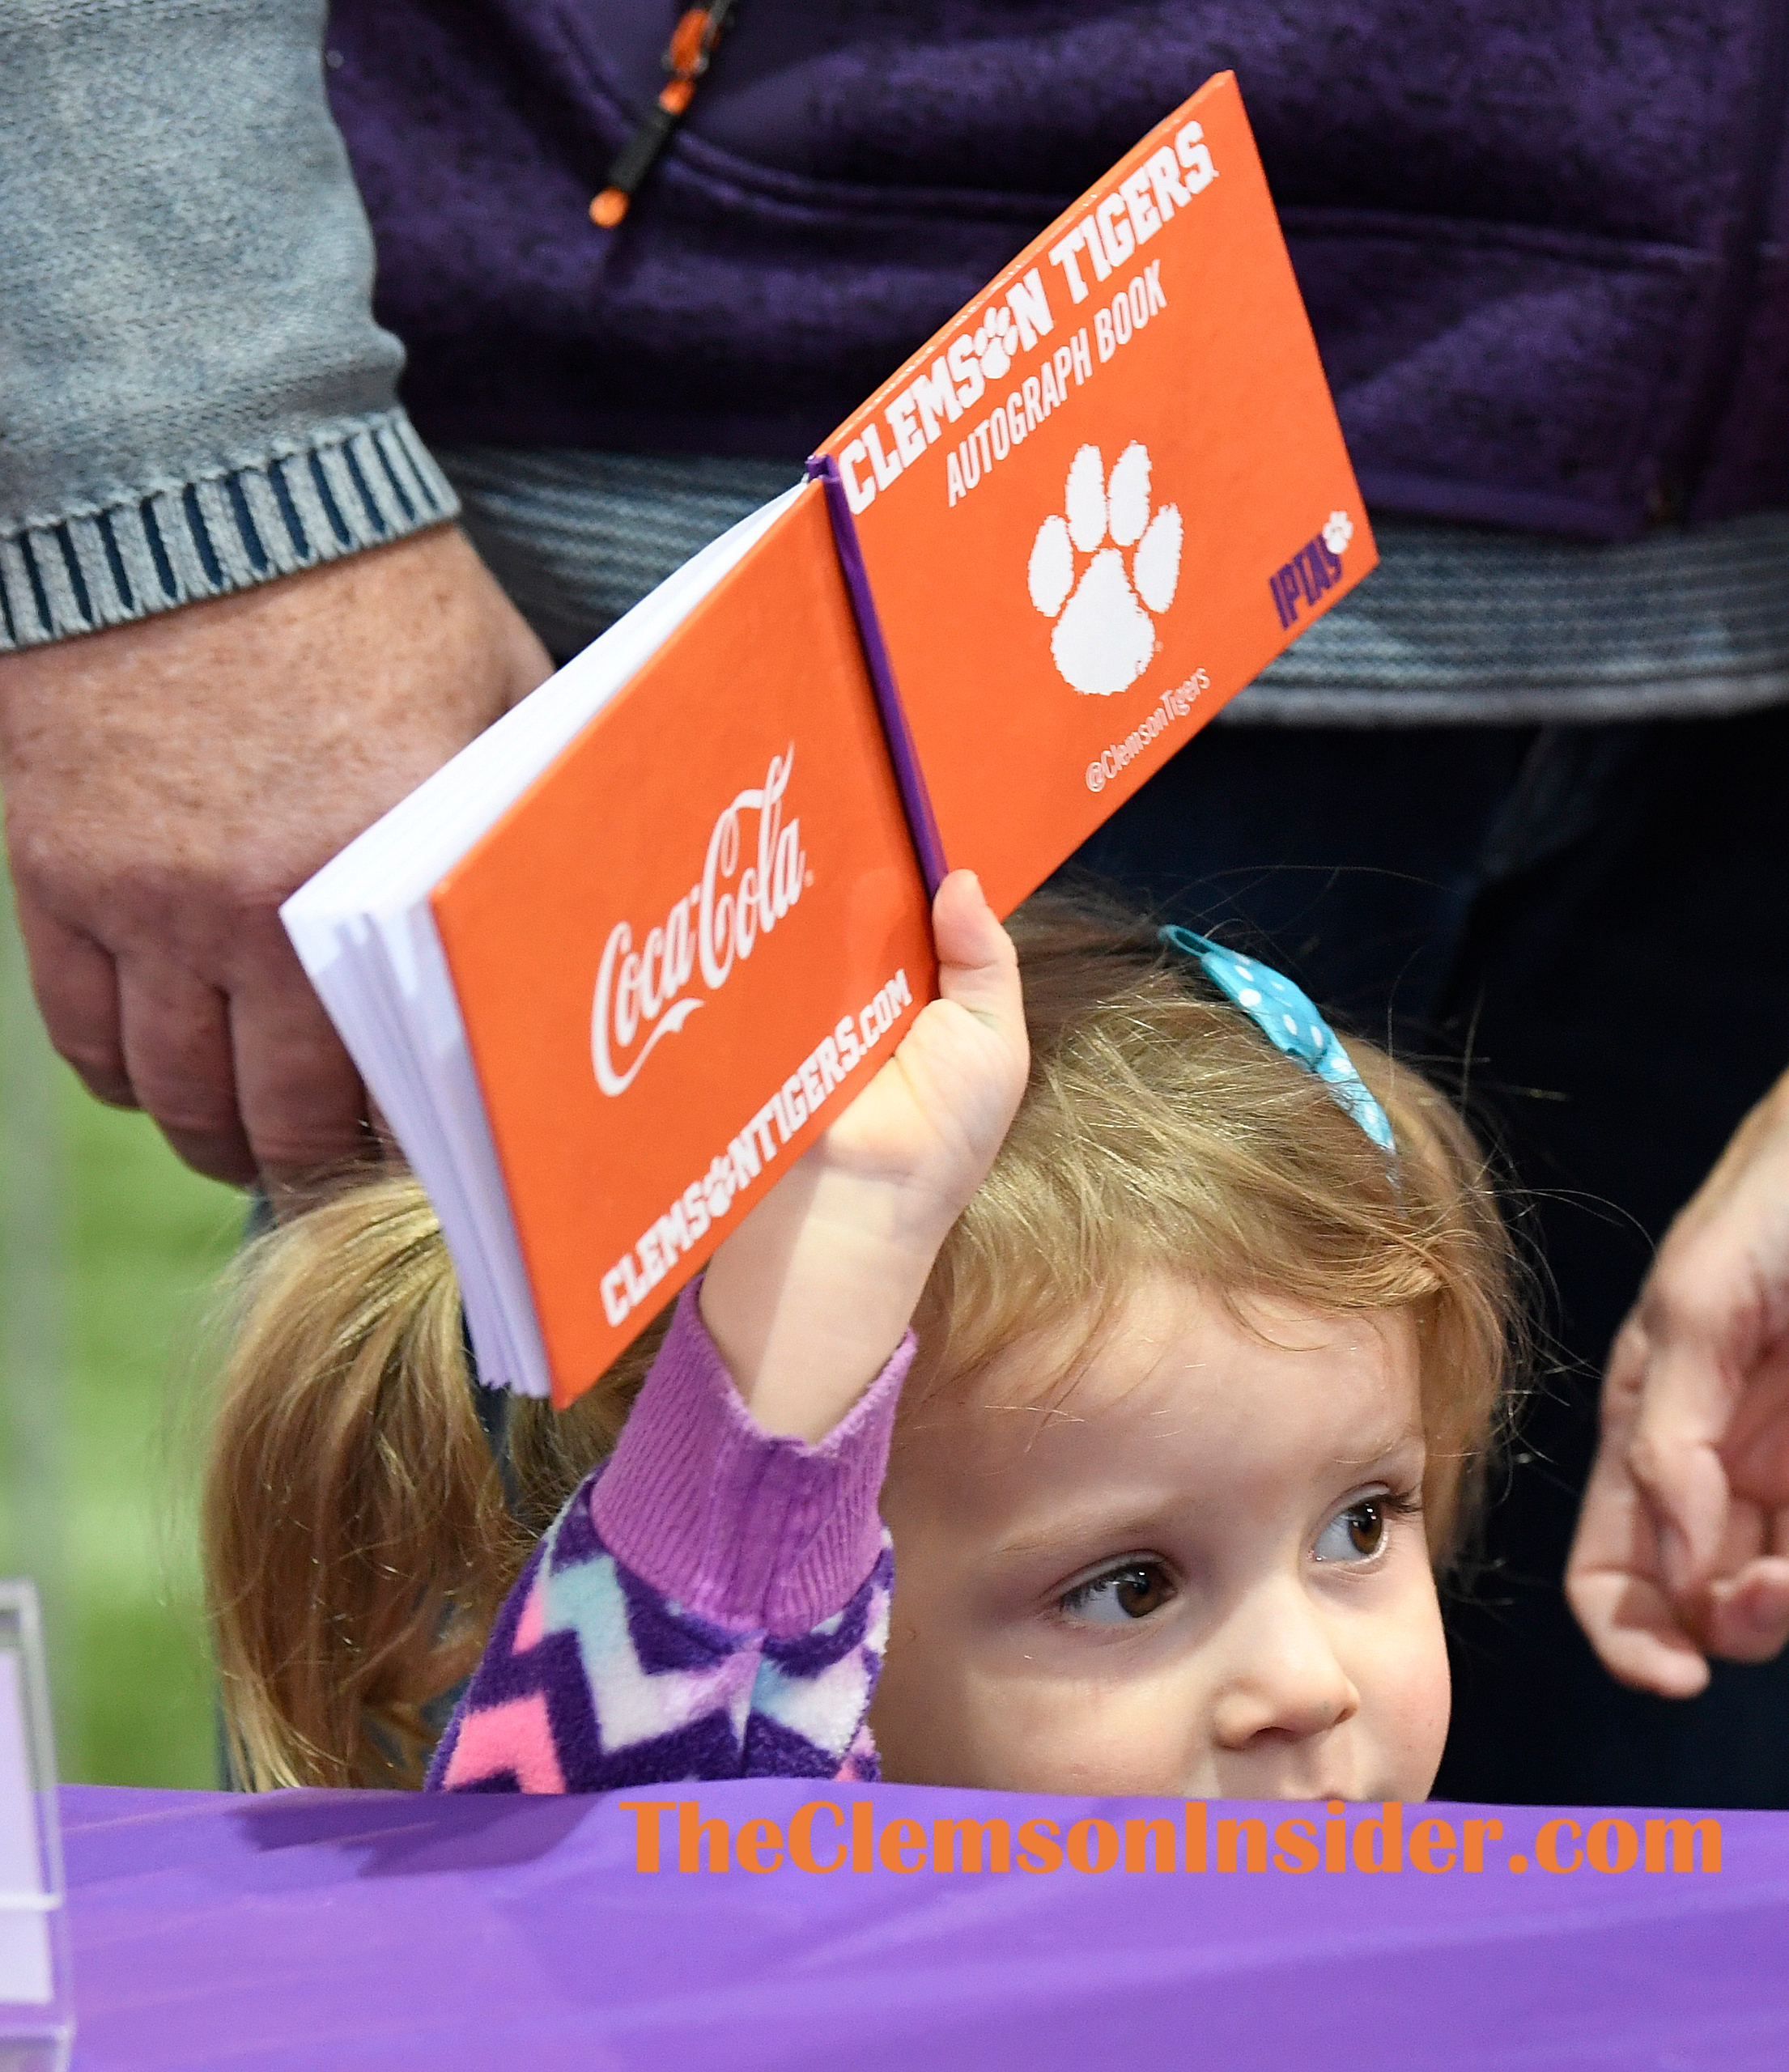 The Clemson baseball team held their fan day Saturday, February 8, 2020 in Clemson's indoor football practice facility. Bart Boatwright/The Clemson Insider